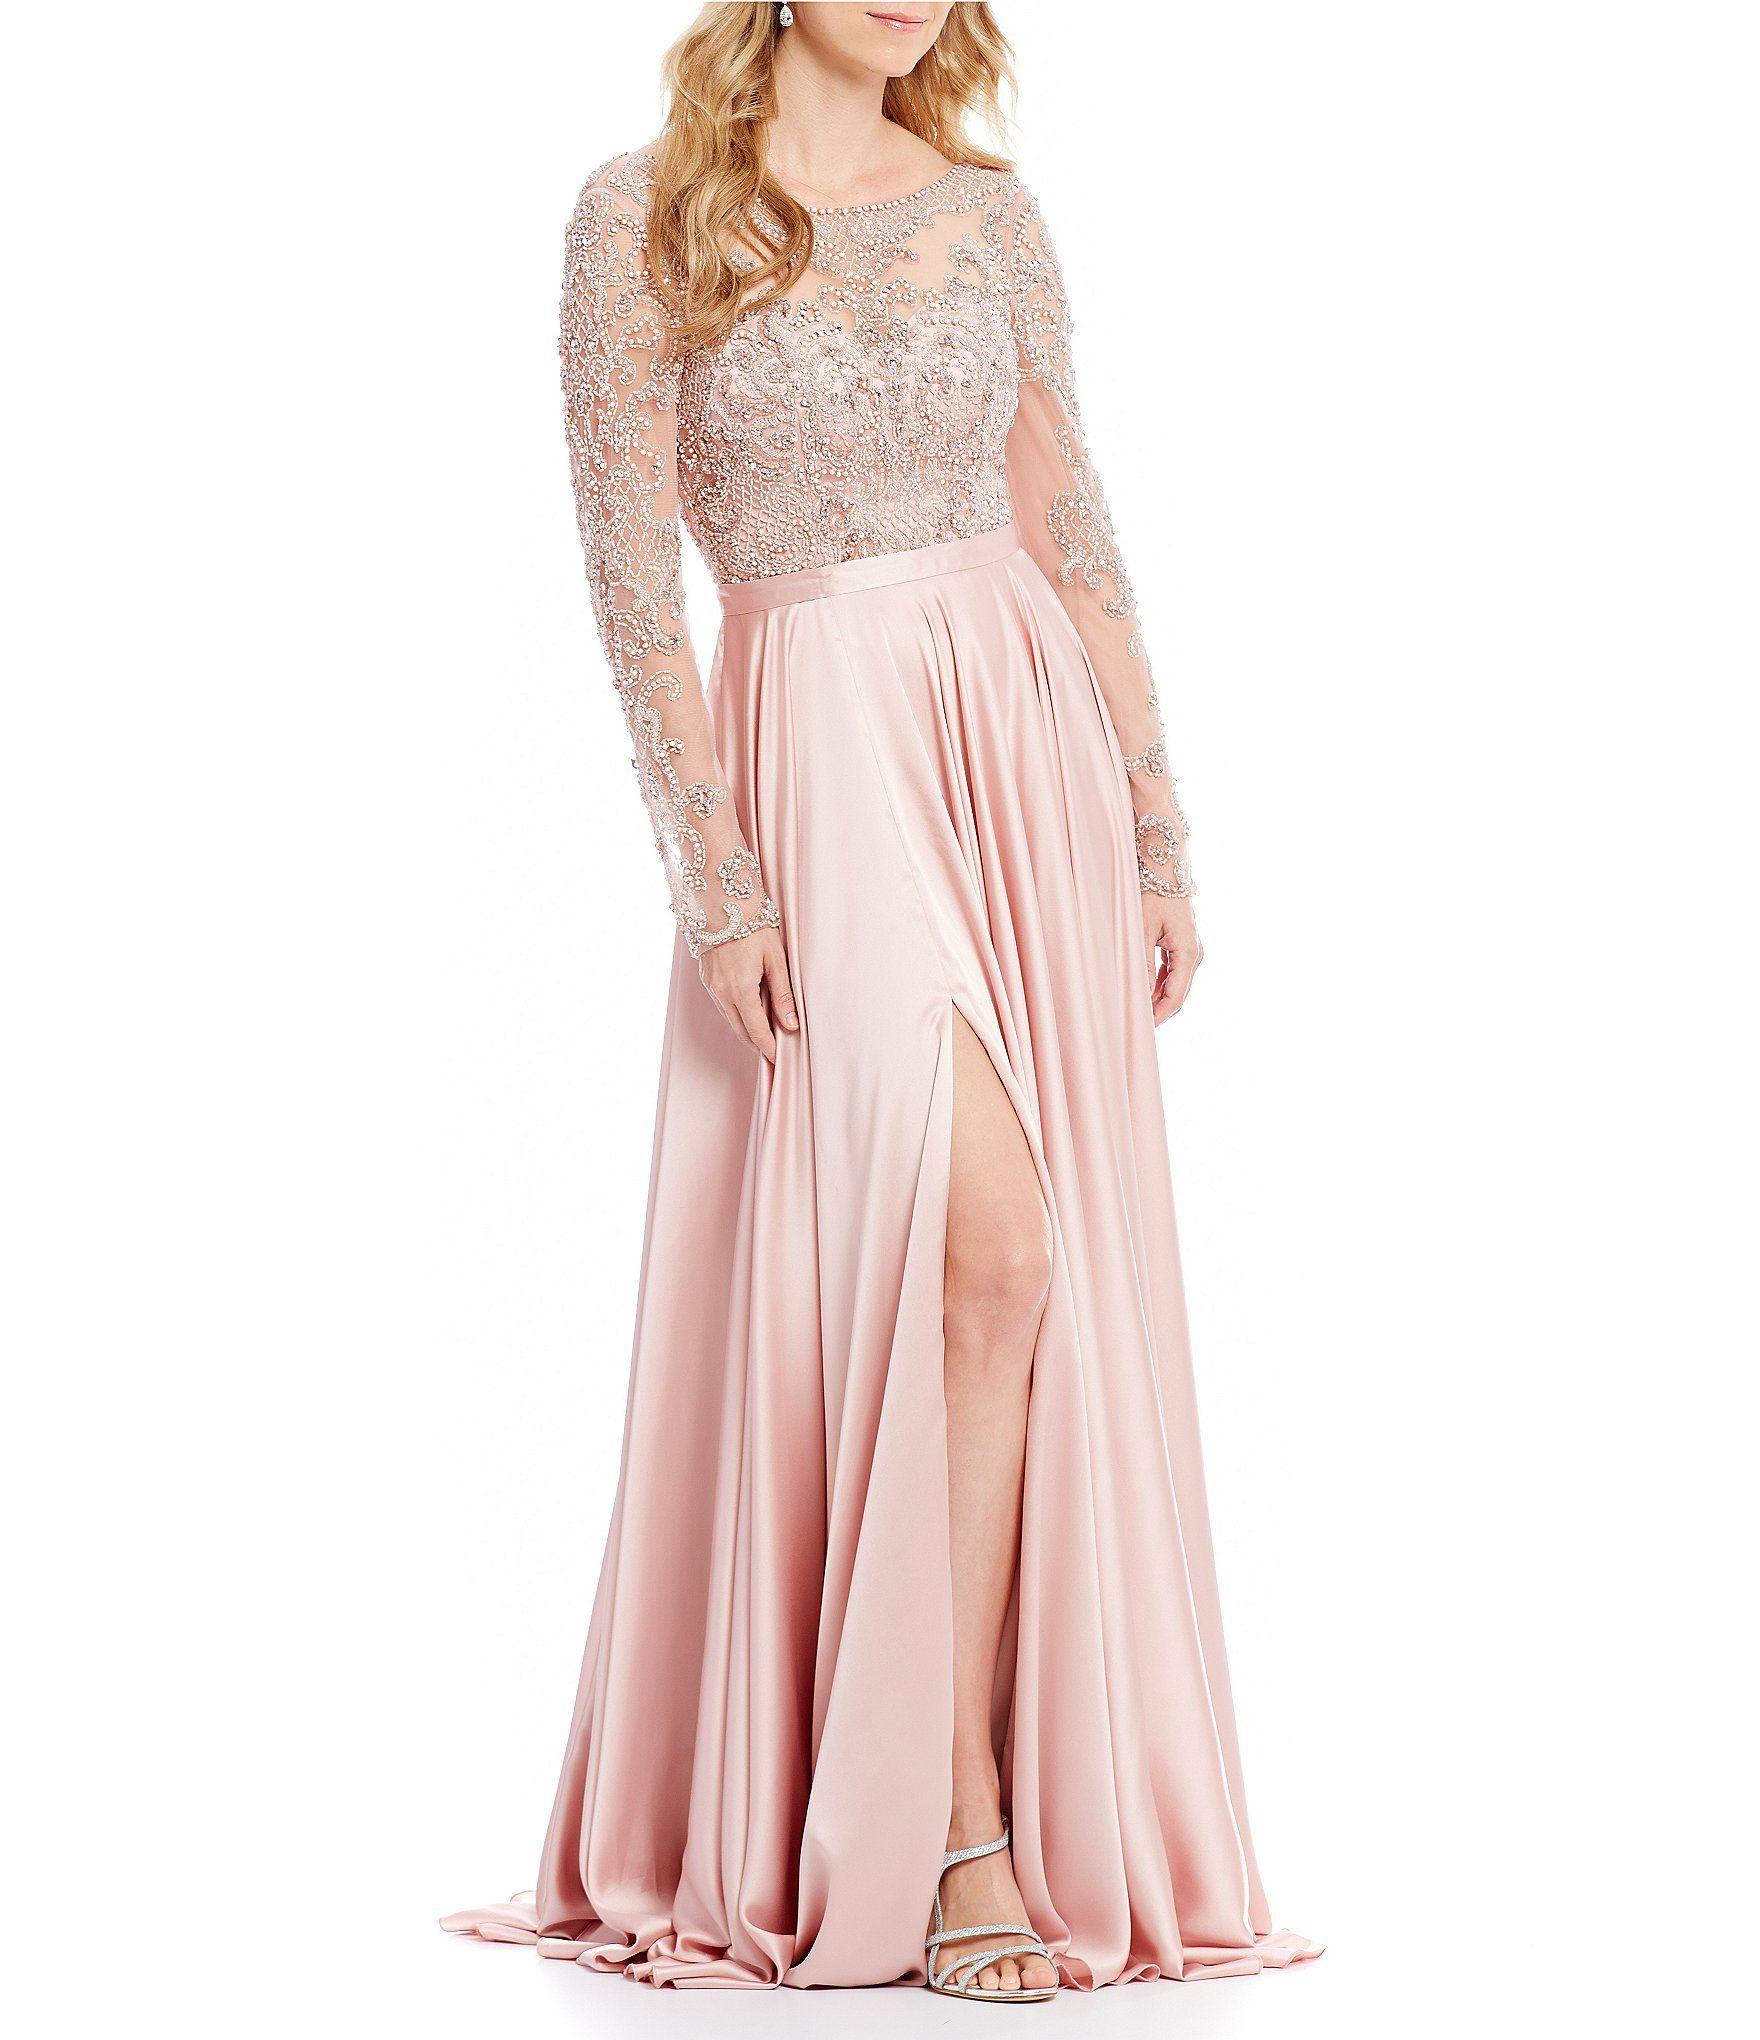 Terani Couture Beaded Lace Bodice Ball Gown #Dillards | Down the ...